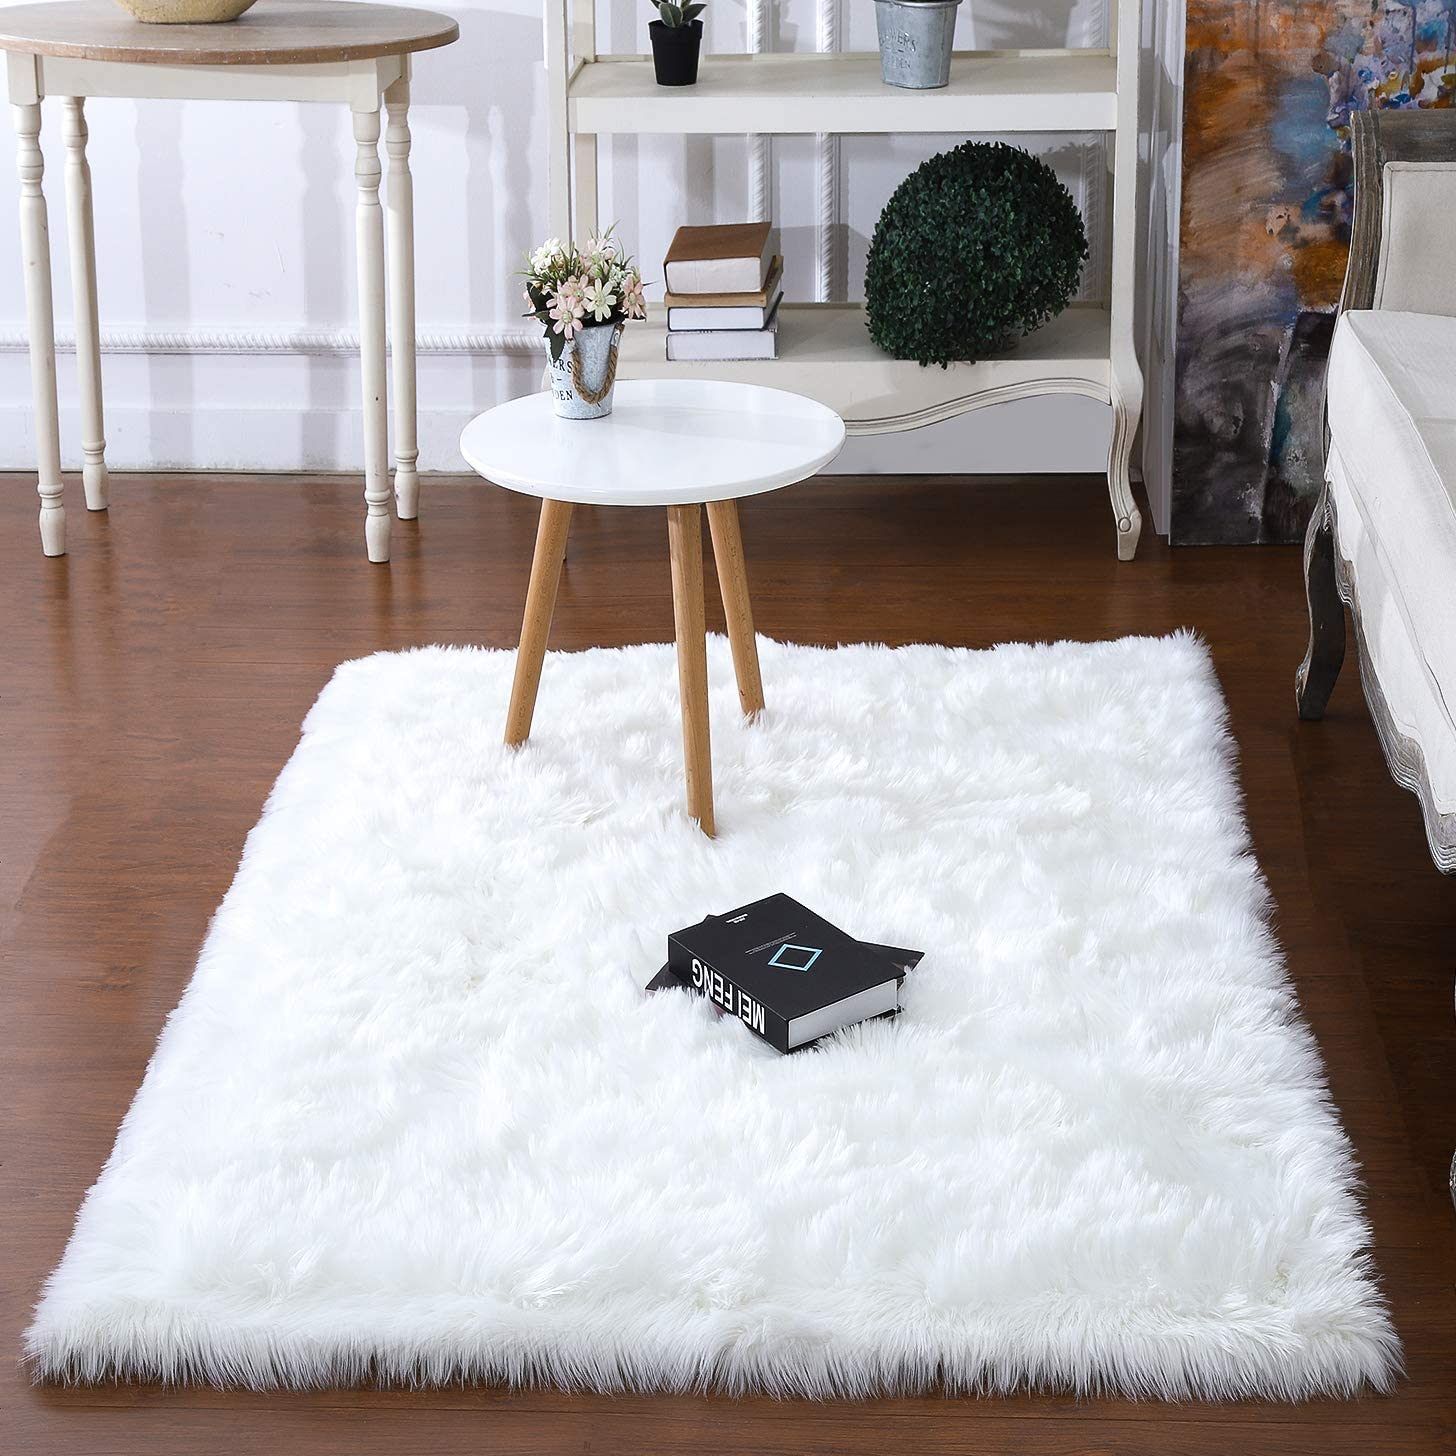 junovo Luxury Fluffy Area Rugs Furry Rug